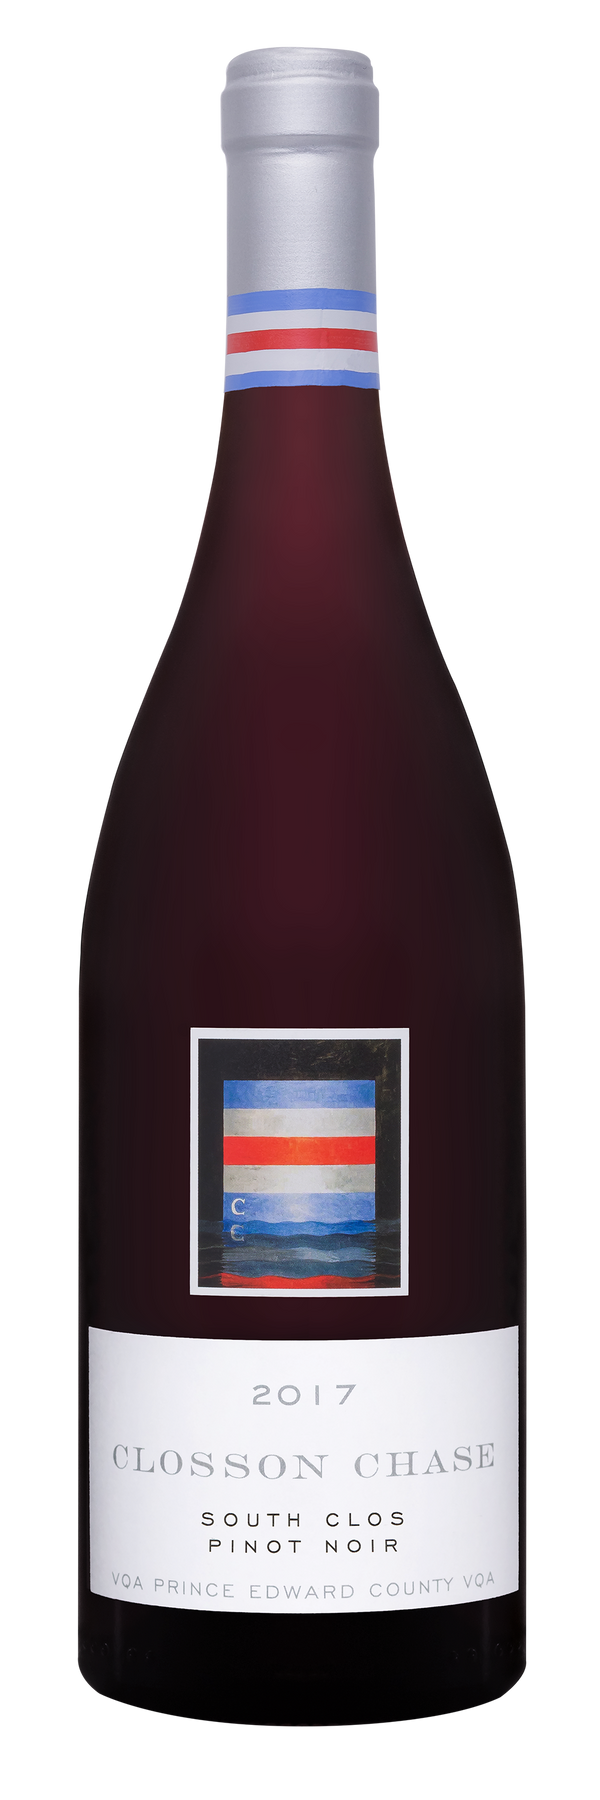 2017 Closson Chase South Clos Pinot Noir